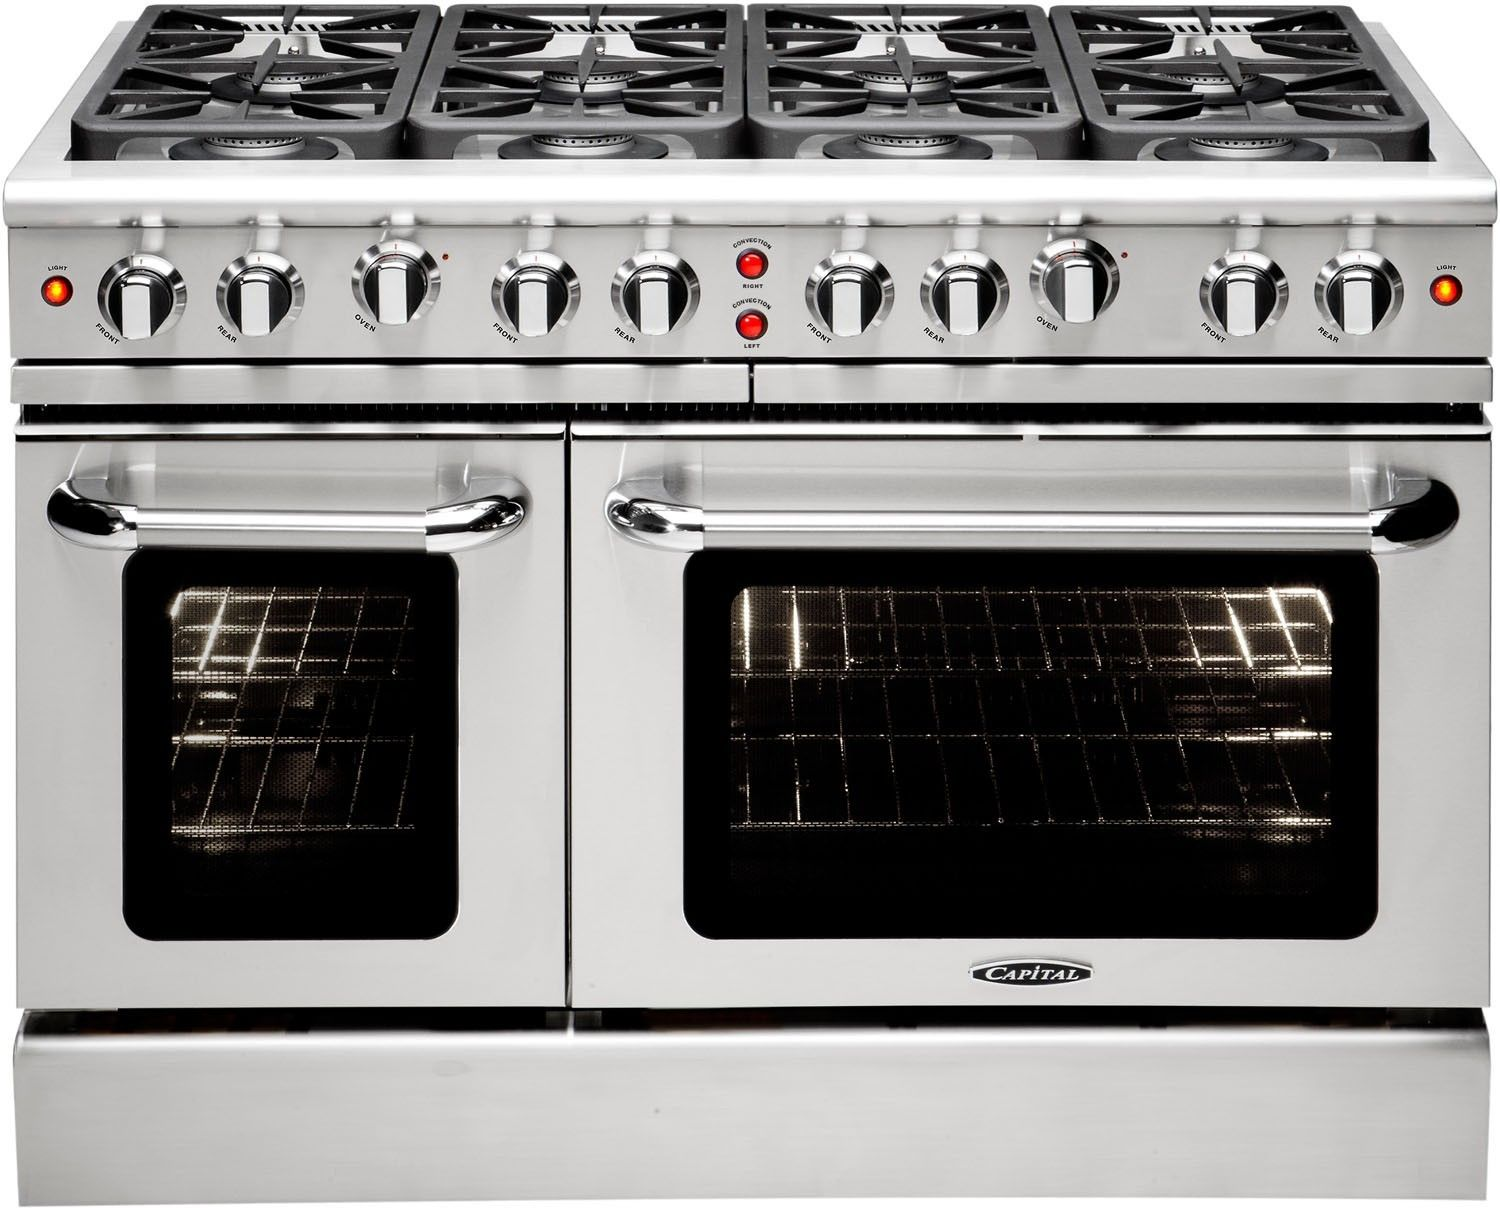 Capital Mcr488l 48 Inch Pro Style Gas Range With 8 Sealed Burners Infrared Broil Burner Interior Oven Light Continuous Grates Convection Bake 4 9 Cu Ft P Cooking Range Range Cooker Double Oven